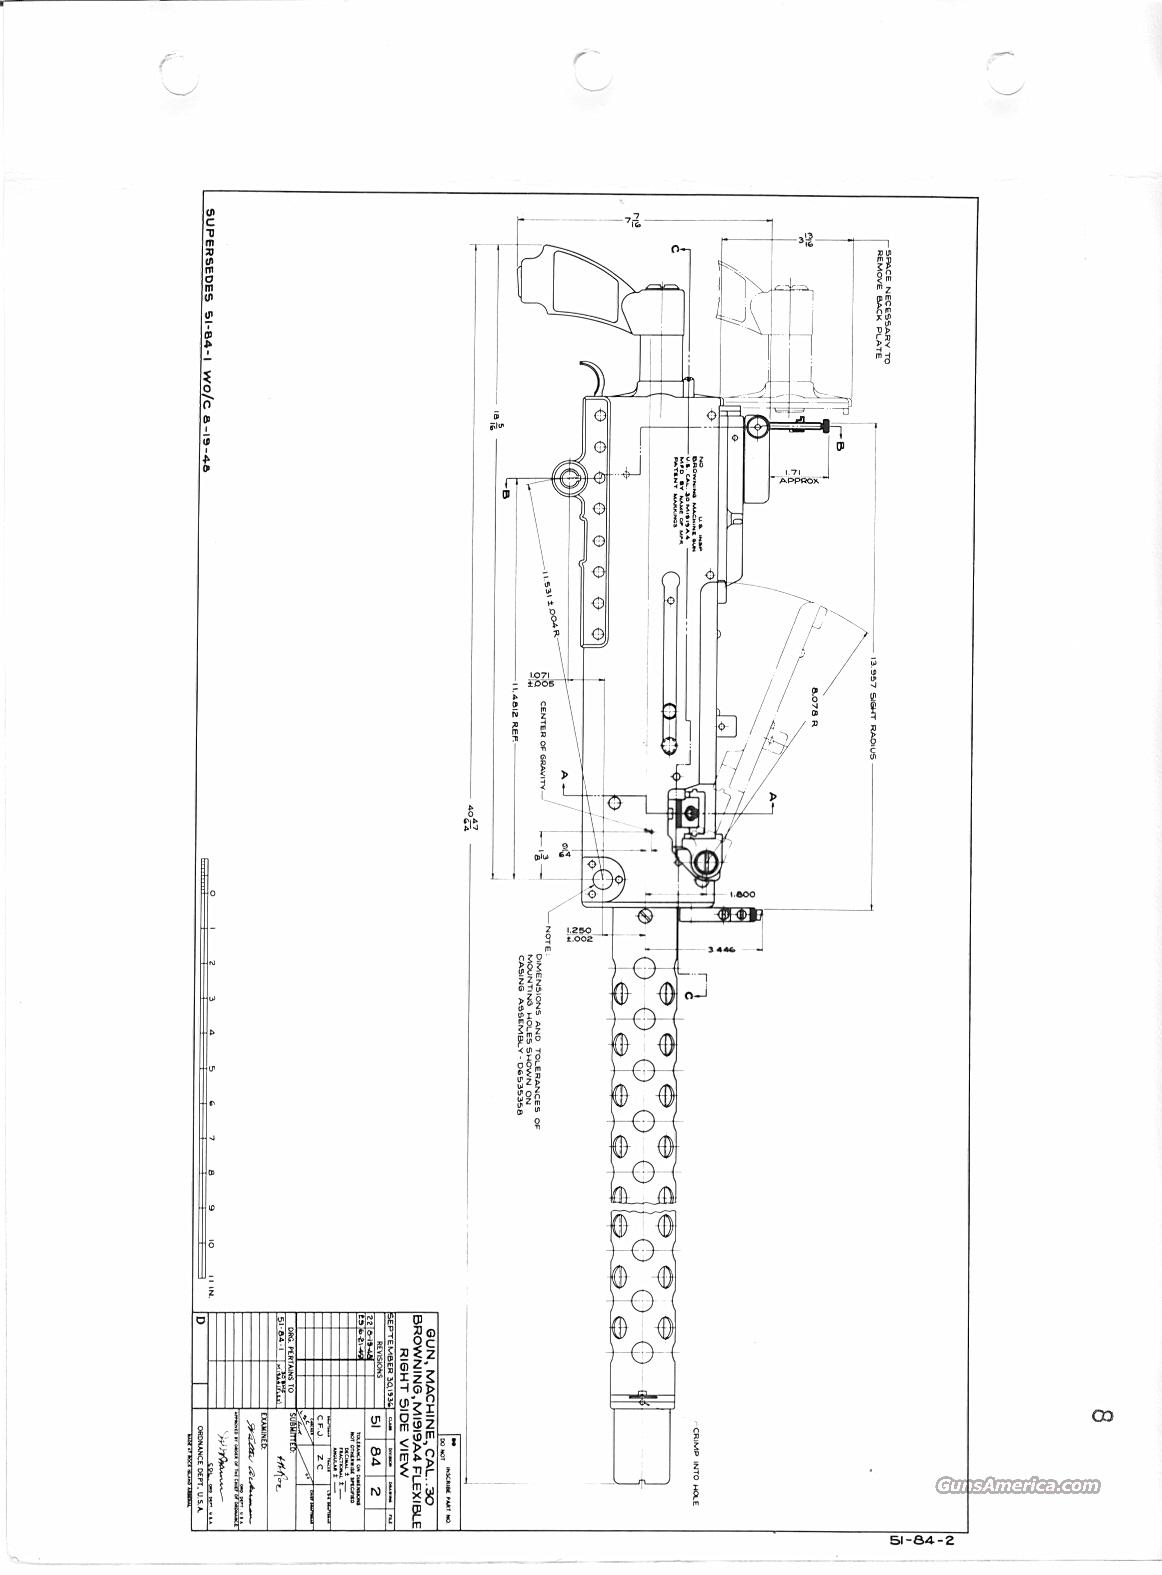 Browning M1919A4 Blueprints. Bound set. 1919A4.... for sale